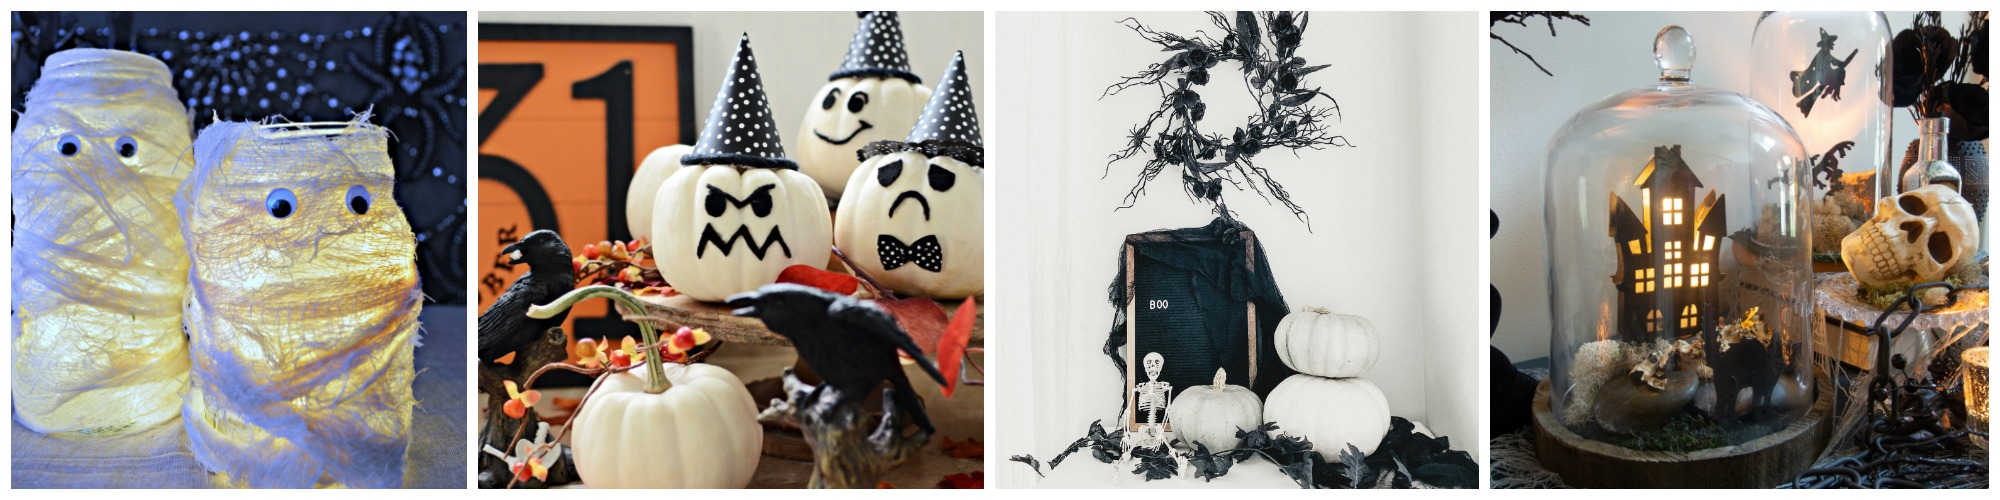 Ghosts and pumpkins pictured.